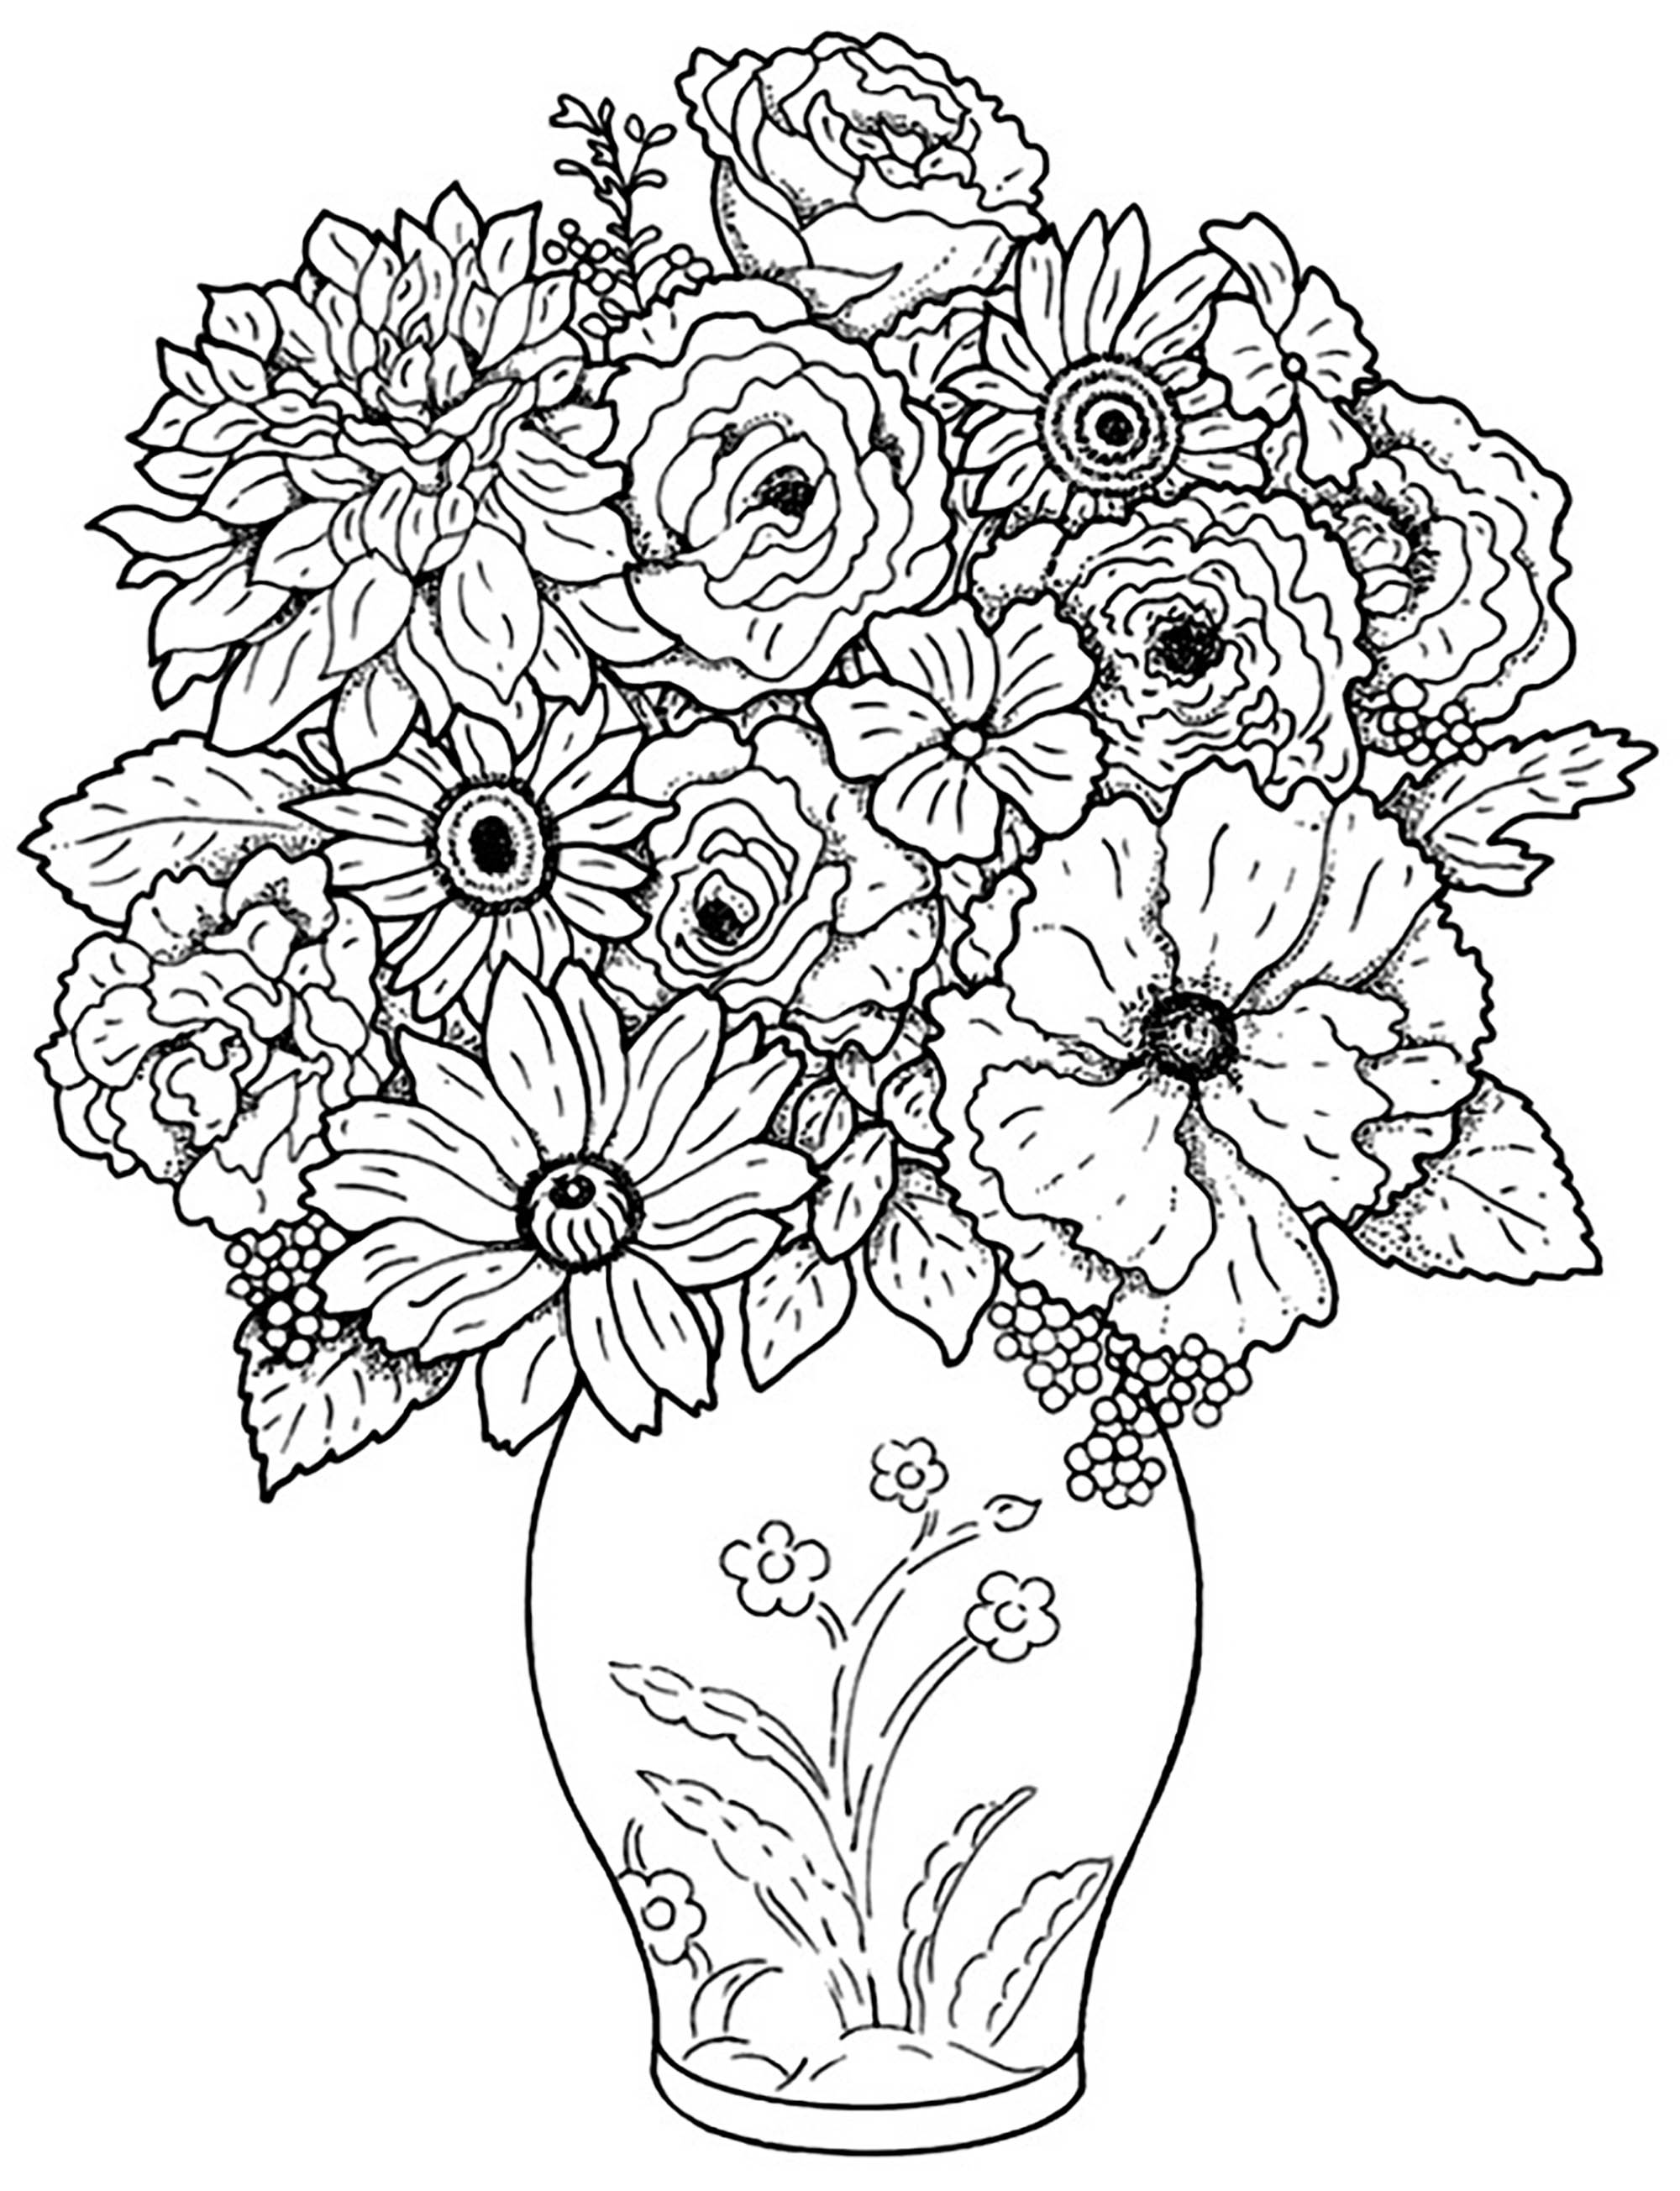 fleurs bouquet coloriage de fleurs coloriages pour enfants. Black Bedroom Furniture Sets. Home Design Ideas